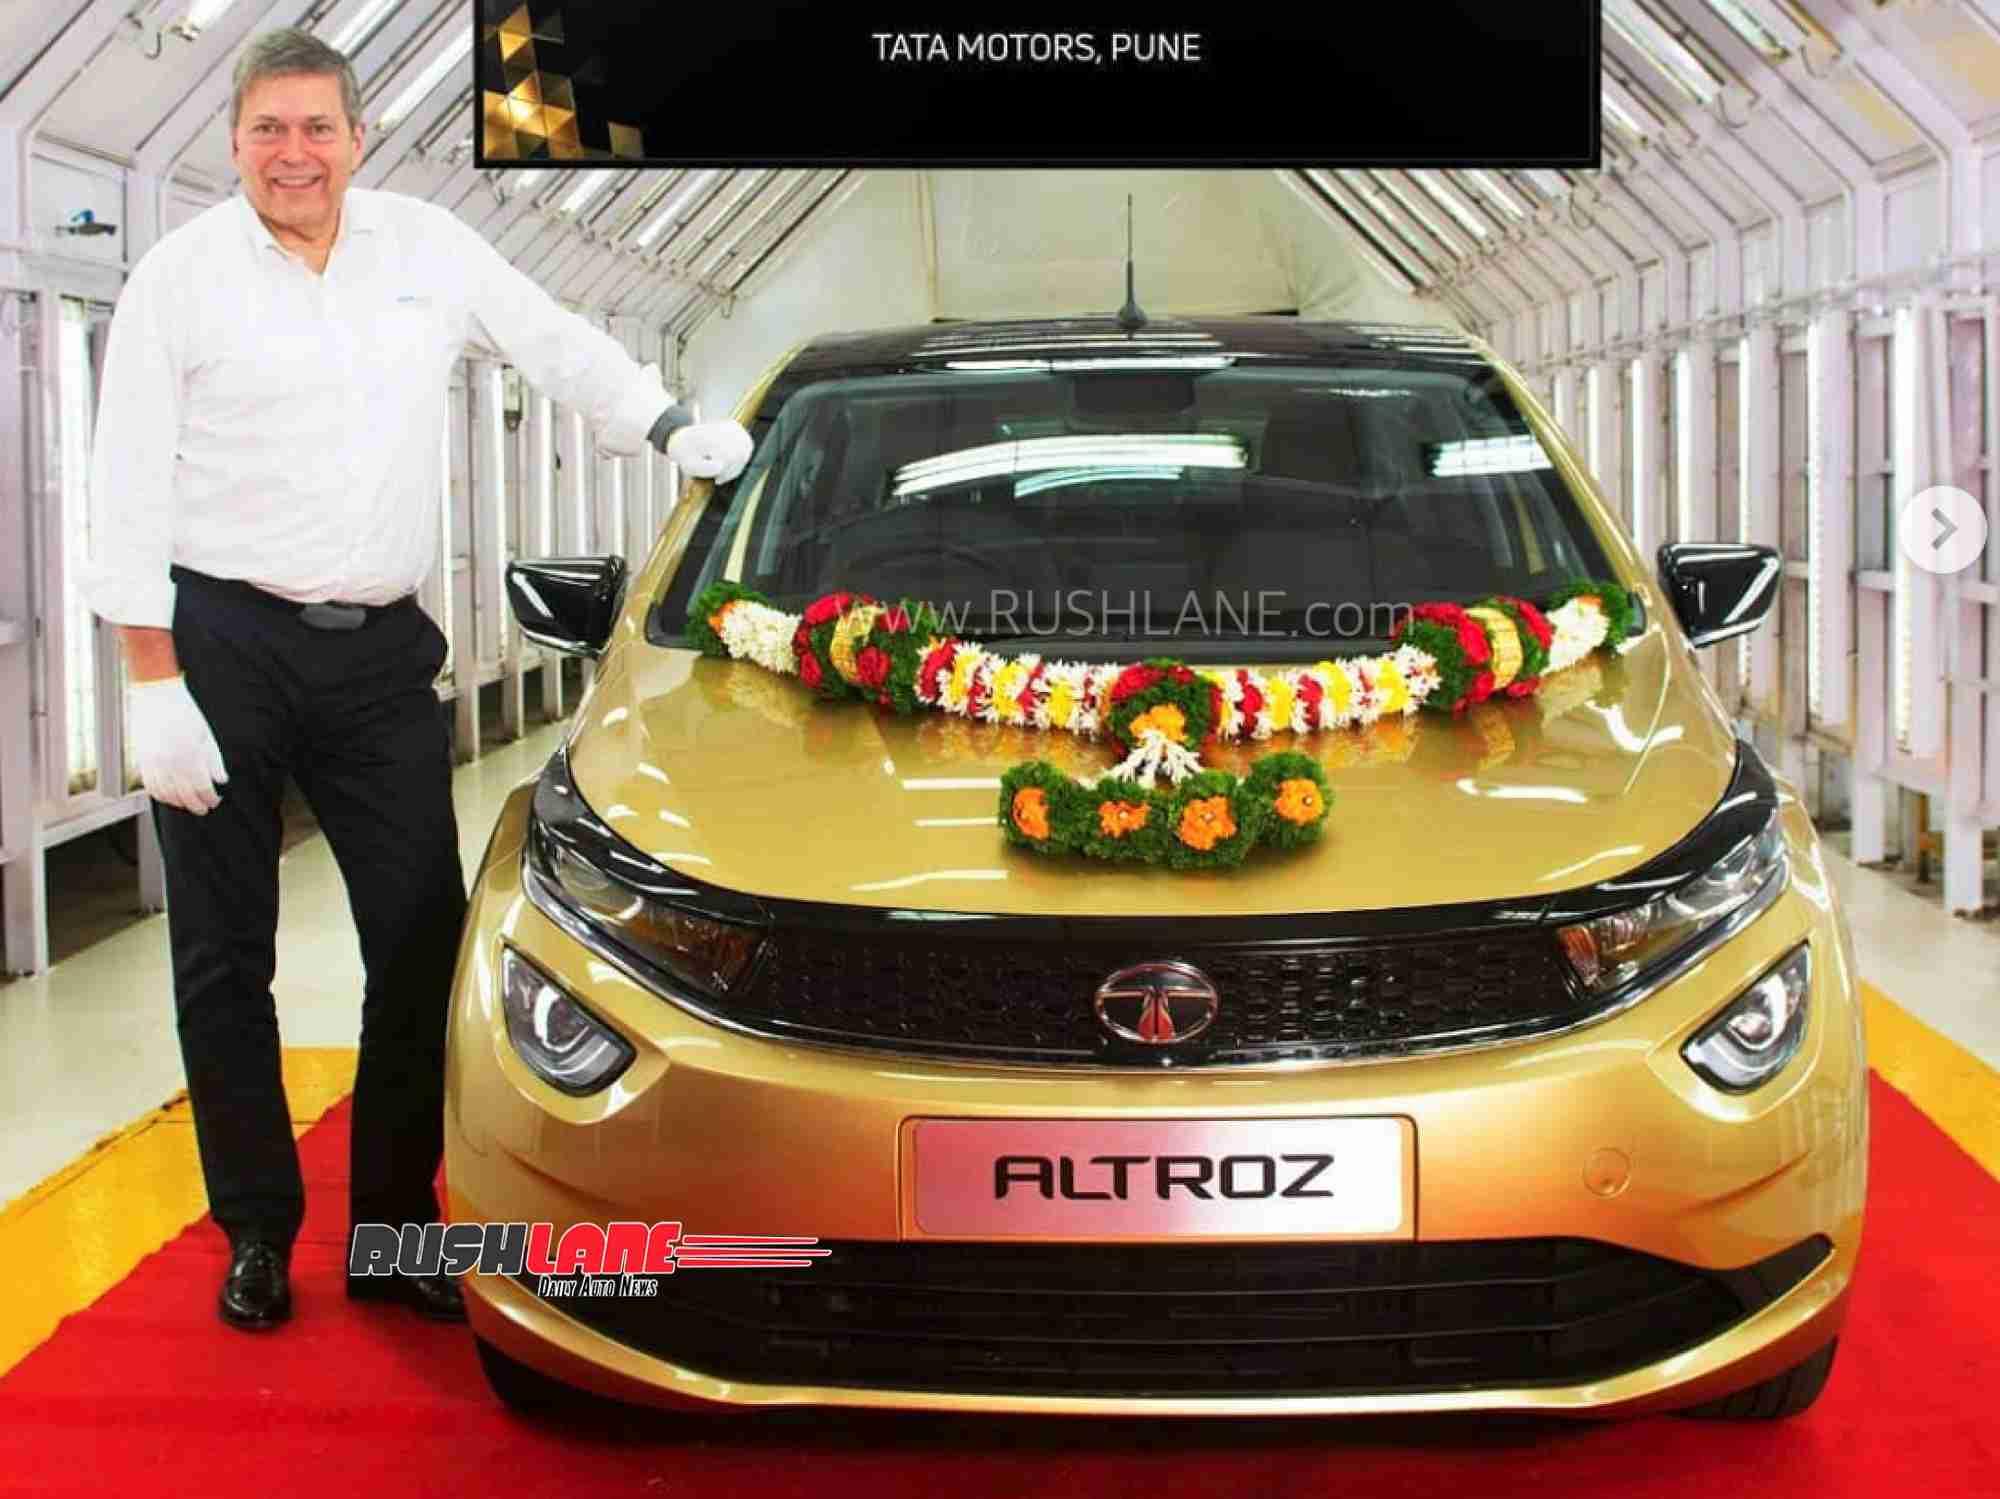 Tata Altroz production starts